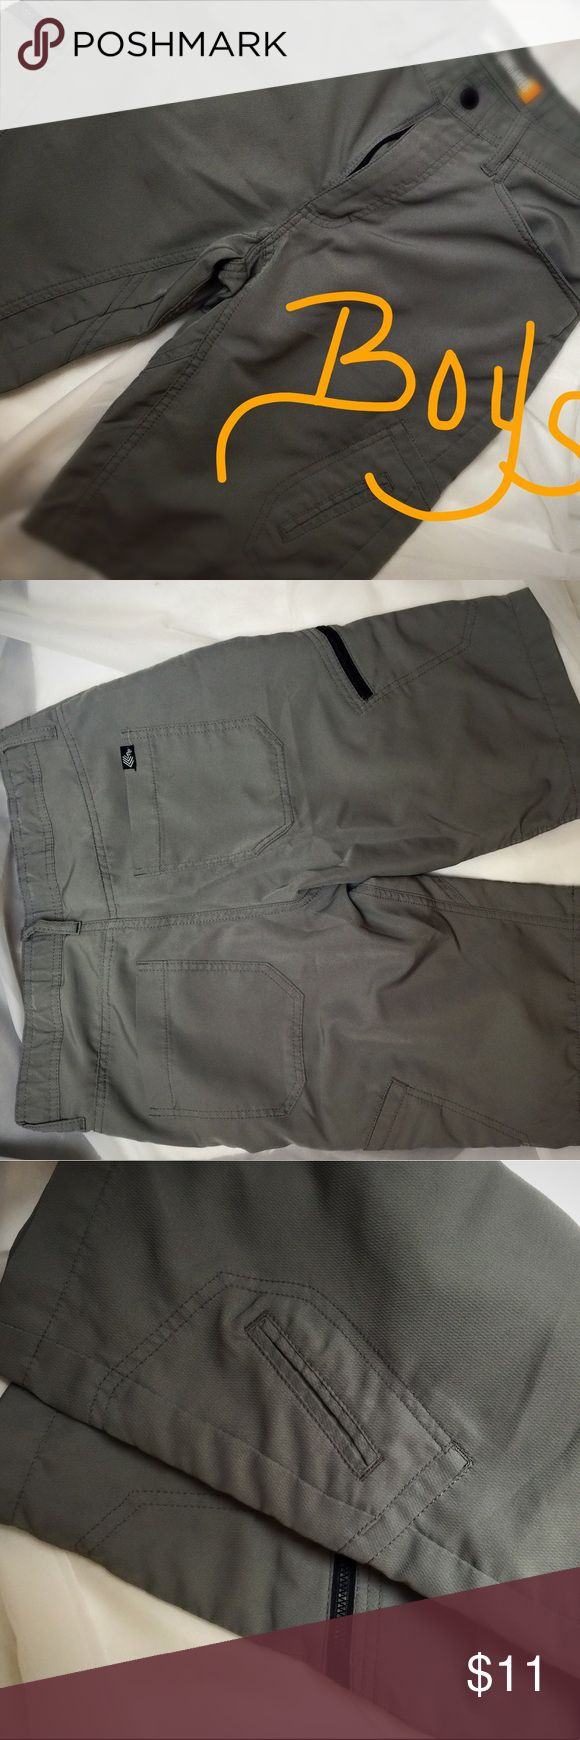 LEE DUNGAREES BOYS Gray Shorts, Sz 14 (boys) Lee Dungarees Gray shorts with zipper pocket on one leg and cargo pocket on other.  Adjustable waste. 100% Polyester shorts.  Very gently used, like new condition. Lee Bottoms Shorts